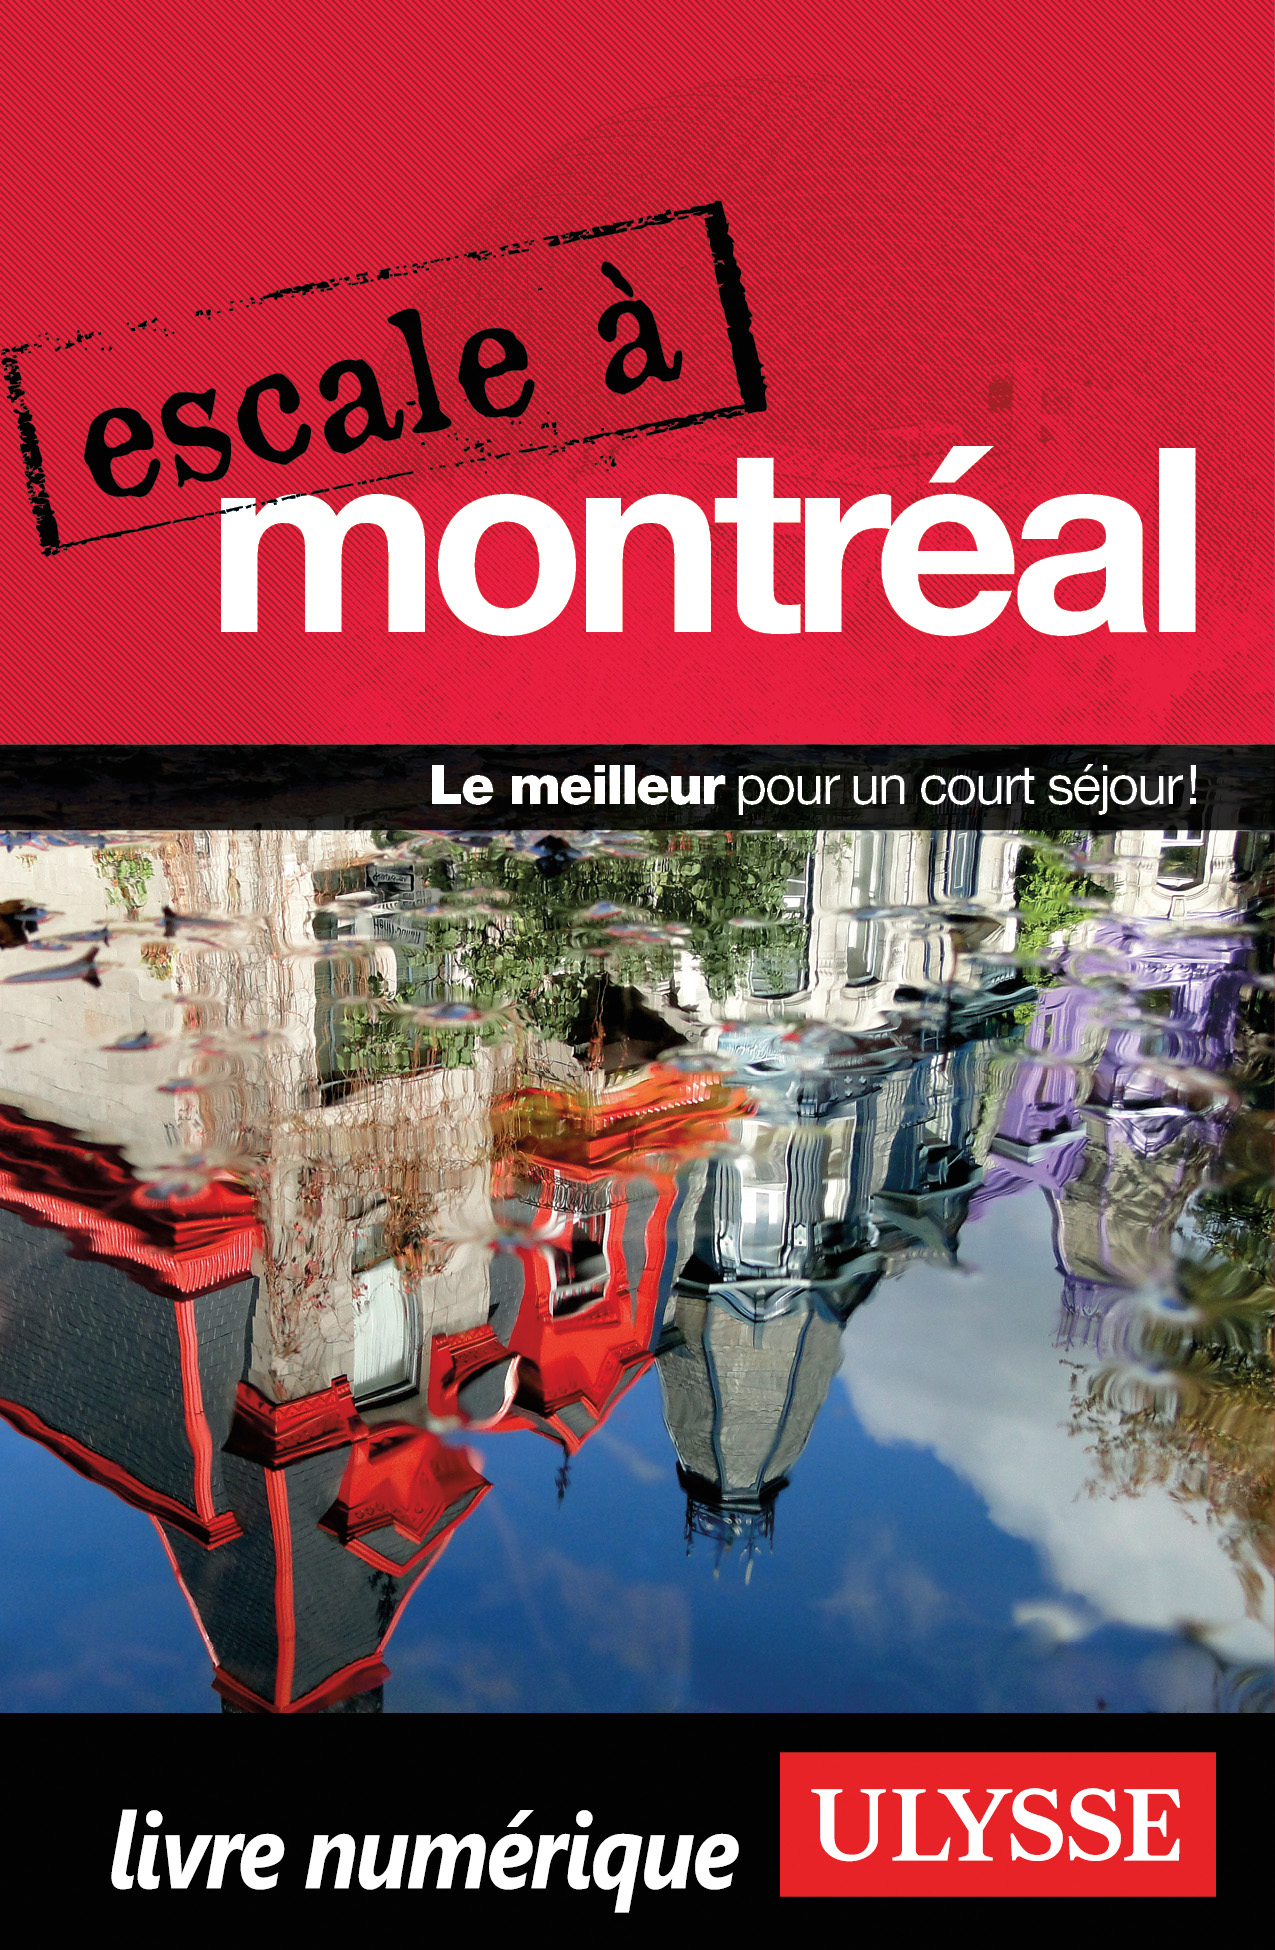 Escale à Montréal